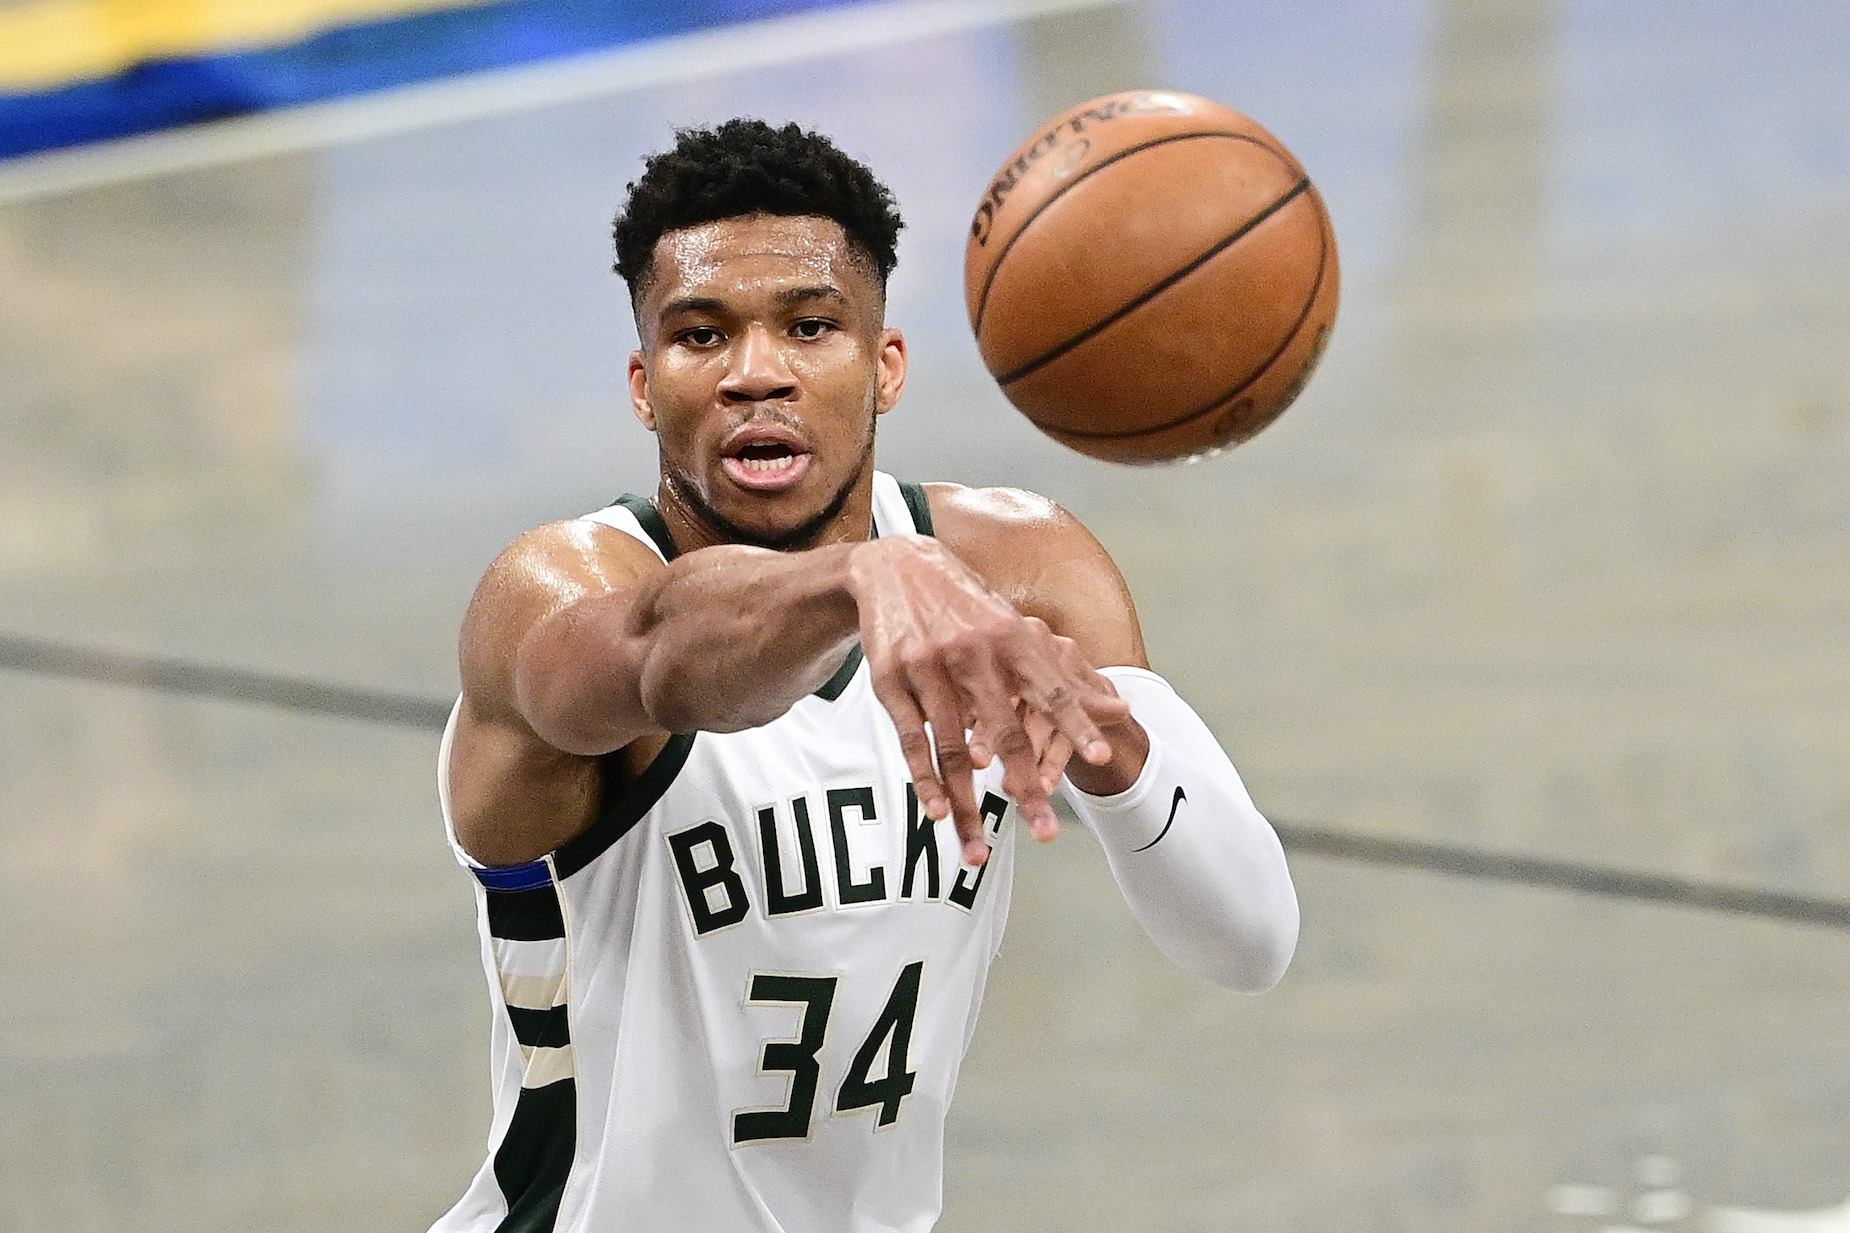 Giannis Antetokounmpo Is Worth $70 Million, but He Refused to Buy a First-Class Plane Ticket Until His Fourth Year in the NBA